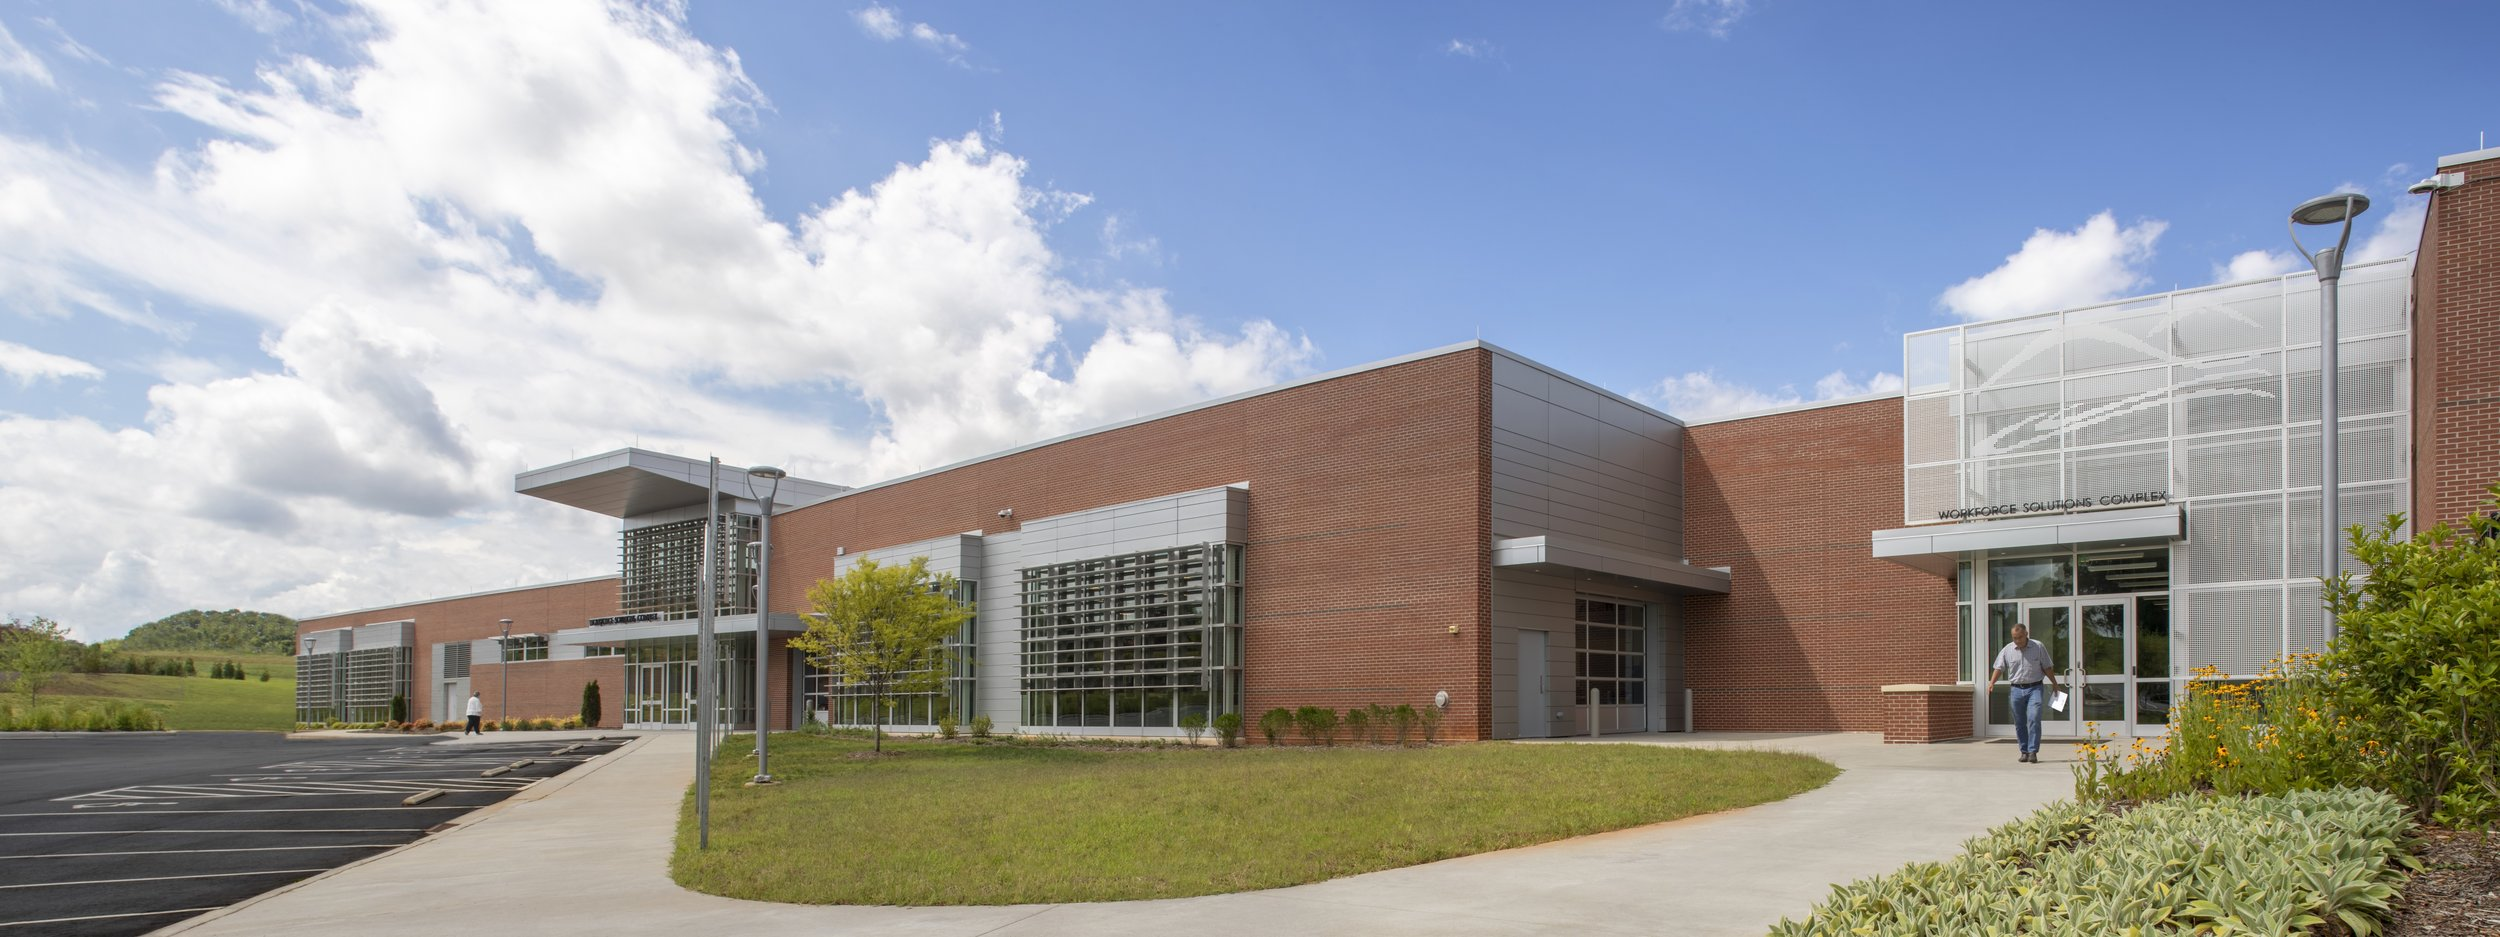 ADW-Higher-Education-CVCC-Hickory-NC-Workforce-Solutions-Exterior-Back.jpg